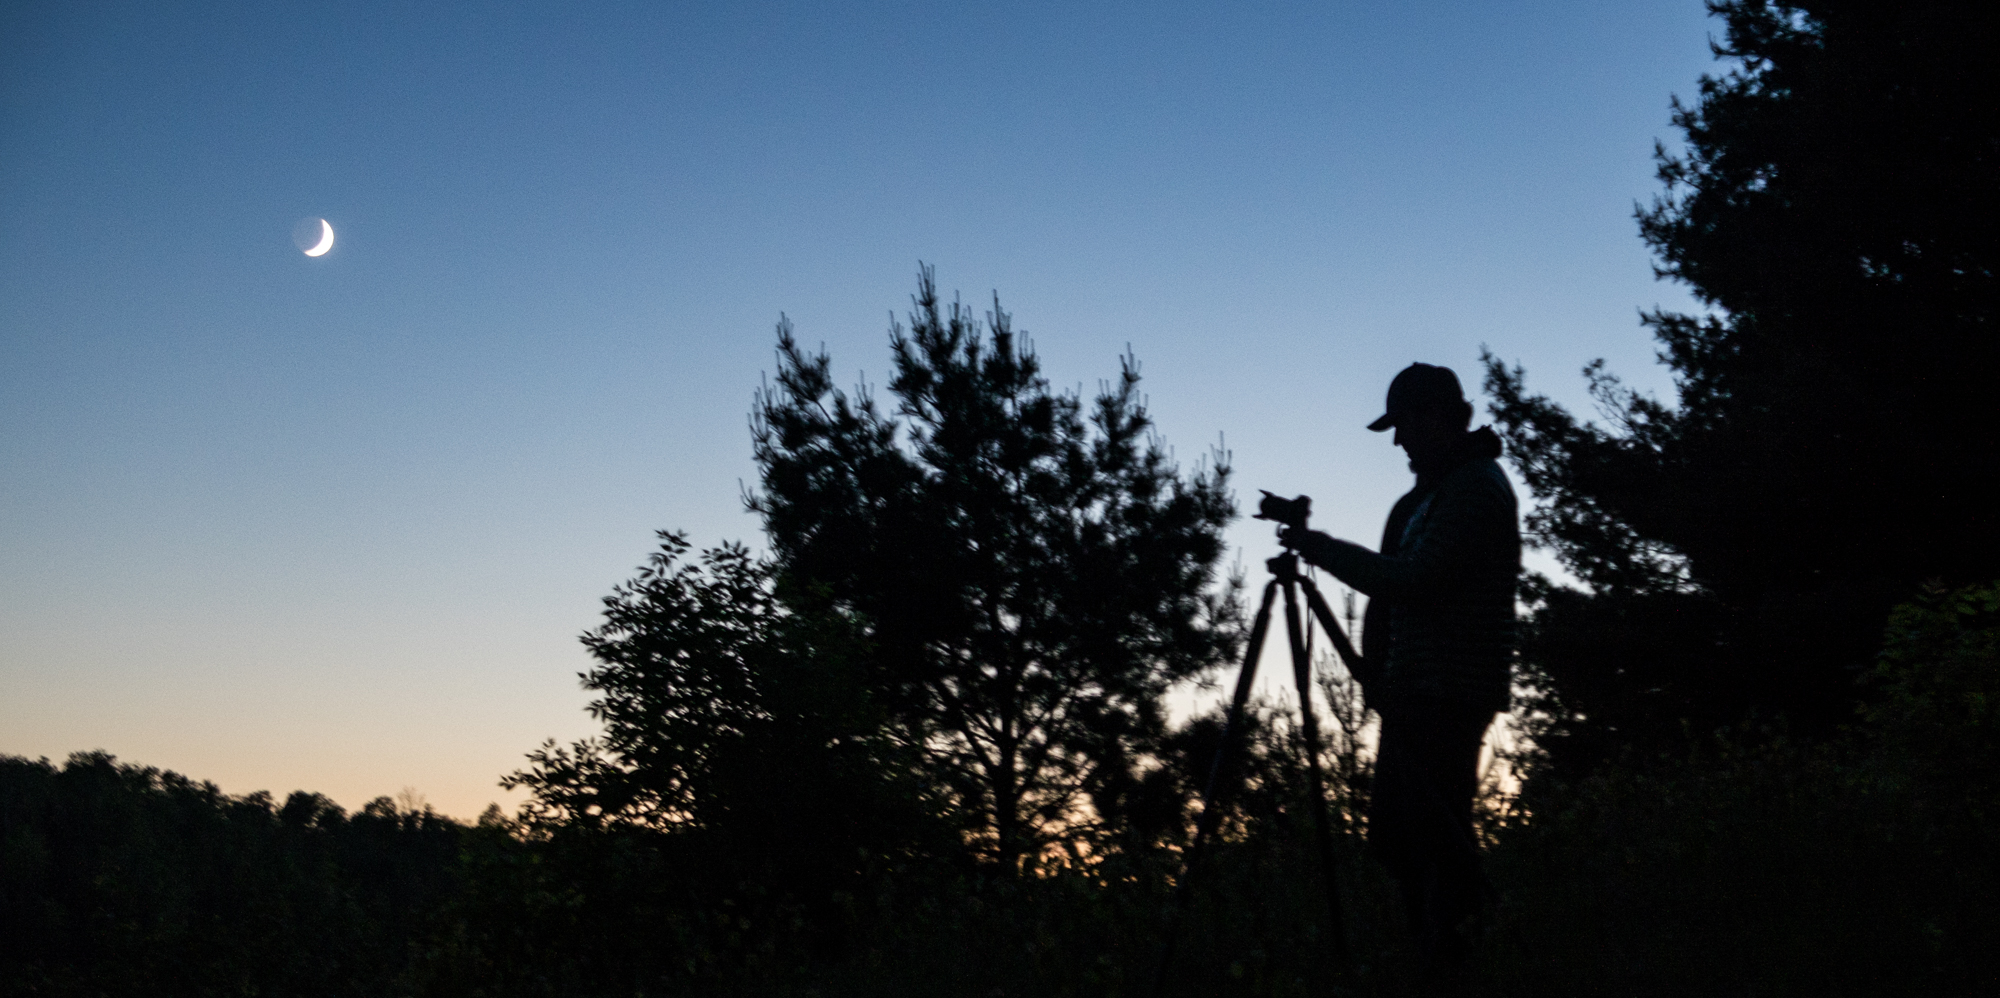 Jonathan photographing the night sky in Voyageurs National Park in Minnesota.